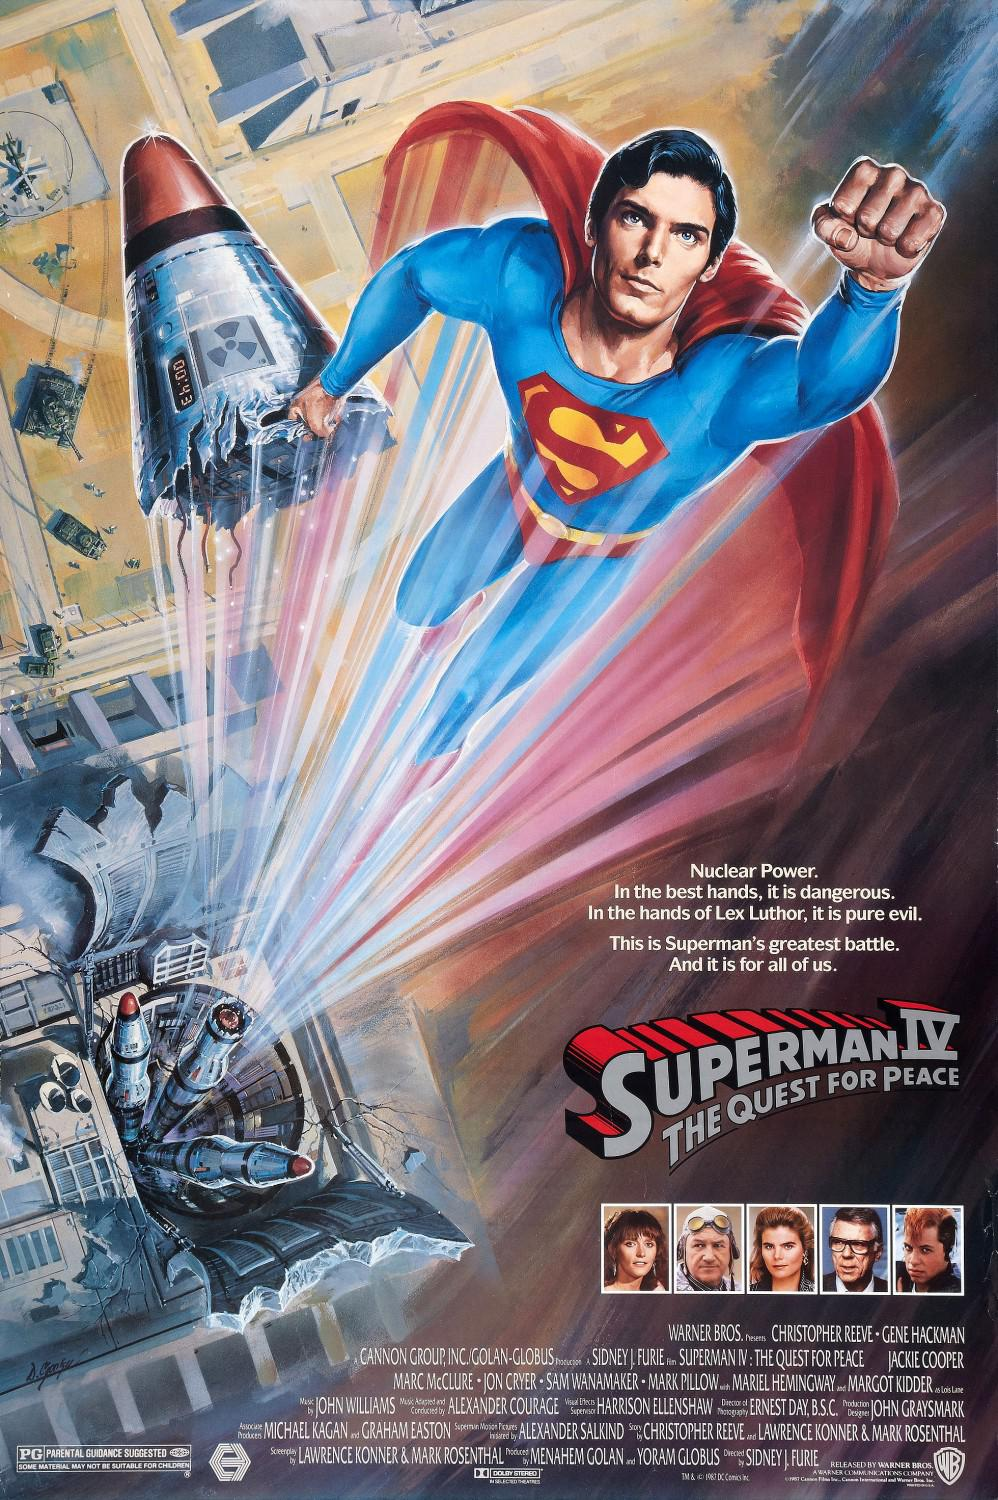 Superman 4 - Christopher Reeve